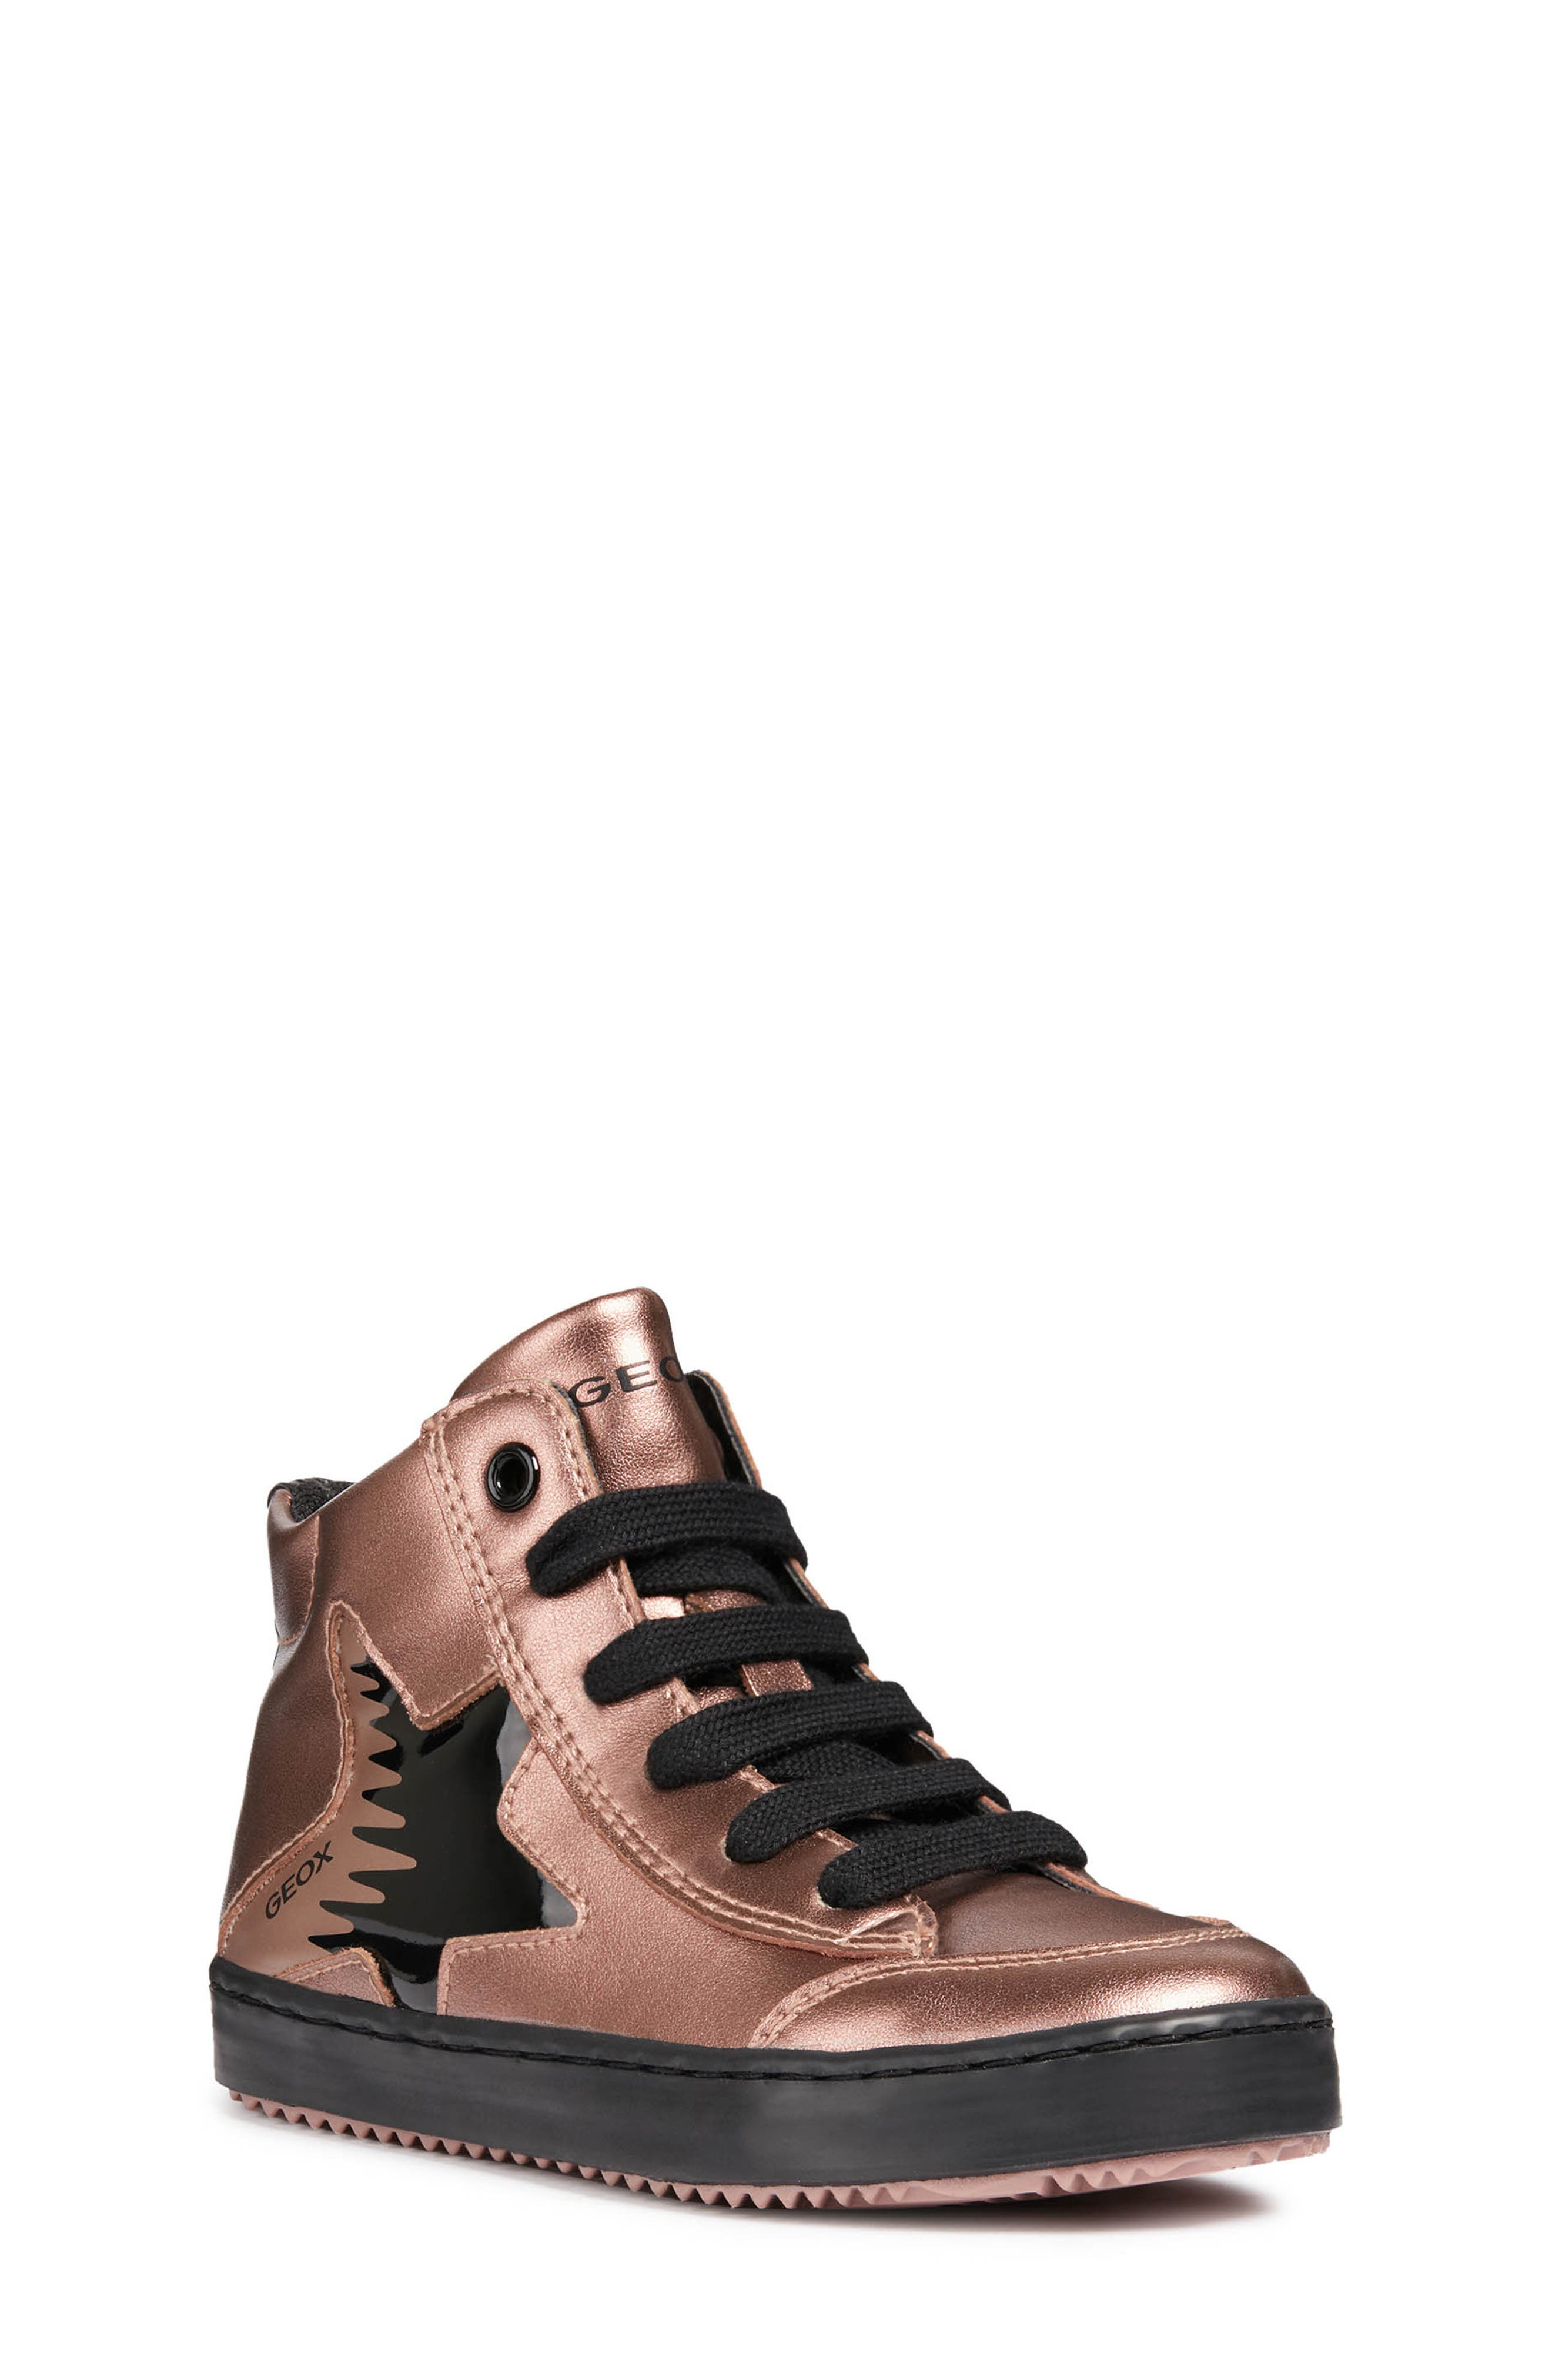 Kalispera Metallic High Top Sneaker,                         Main,                         color, ROSE SMOKE